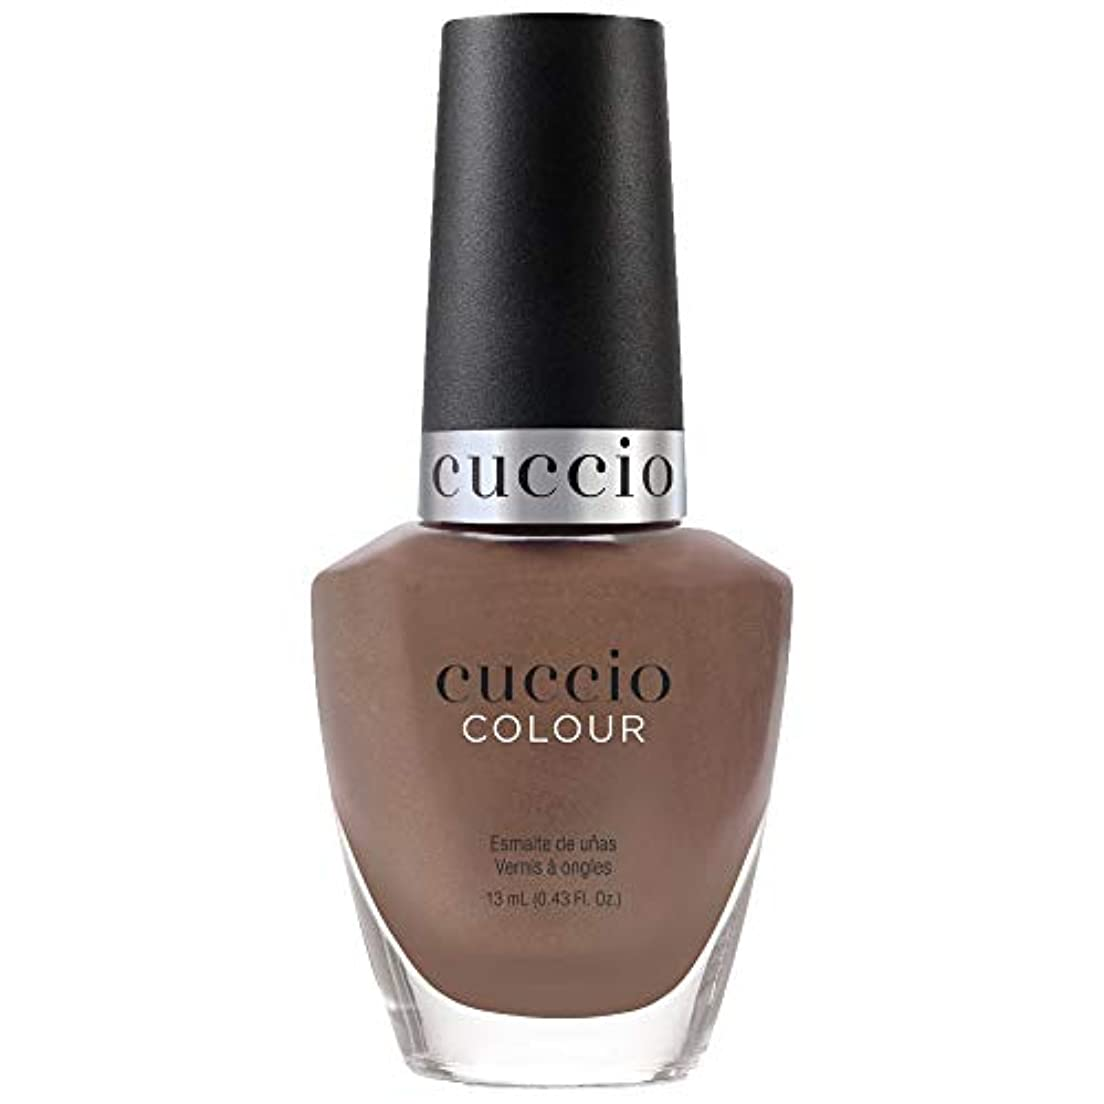 キャンペーン方法論香水Cuccio Colour Nail Lacquer - Tapestry Collection - Positive Thread - 13 mL / 0.43 oz